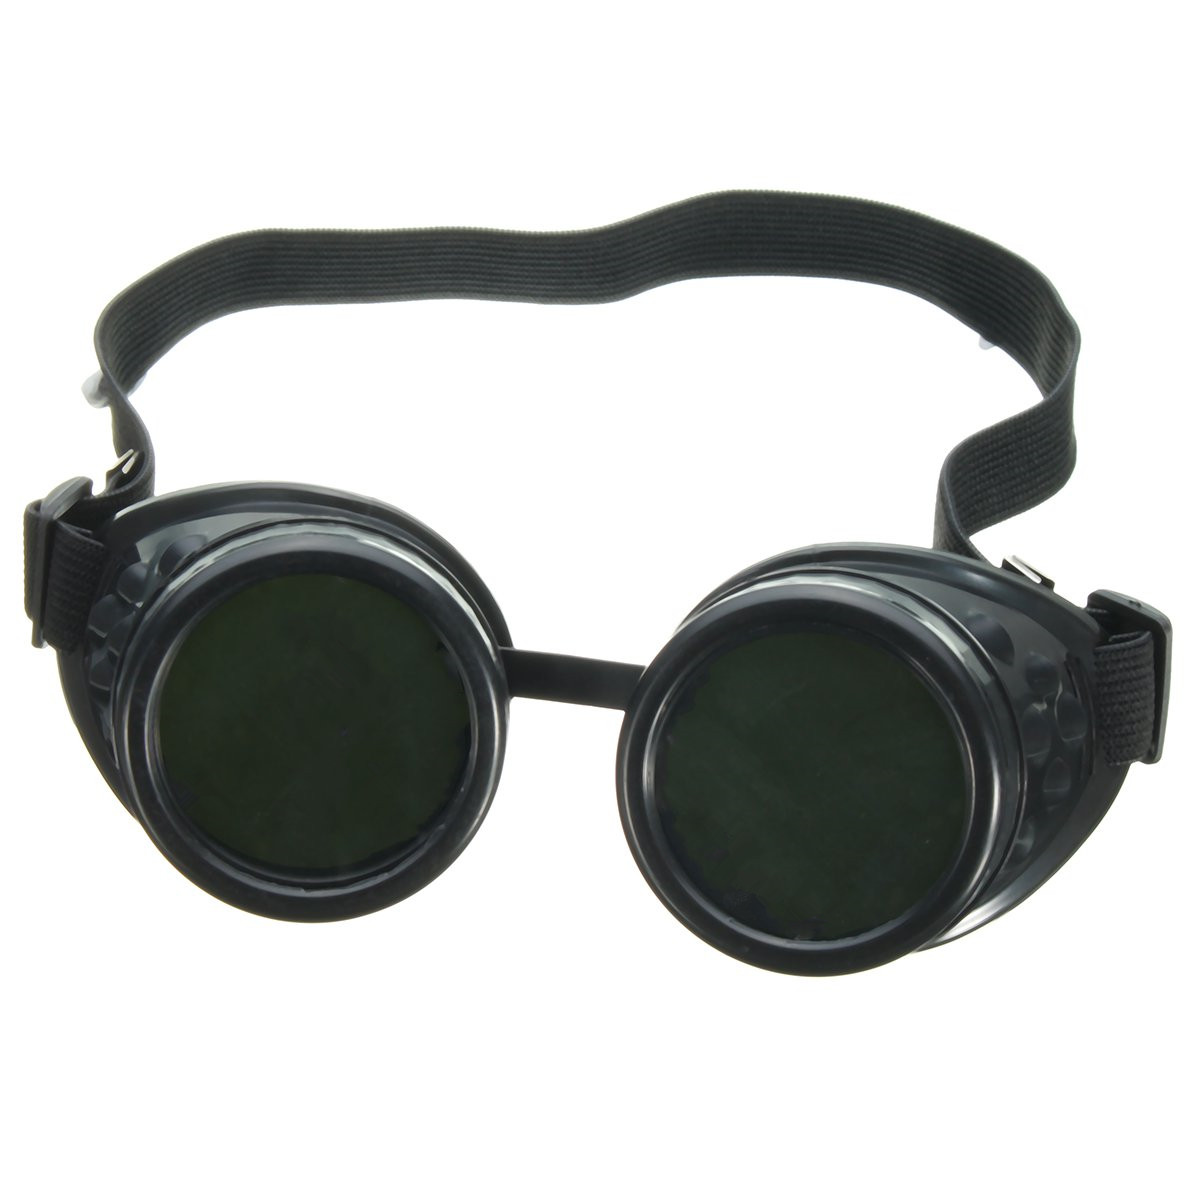 NEW Welding Cutting Welders Industrial Safety Goggles Steampunk Cup Goggles Hot Workplace Safety Goggles цены